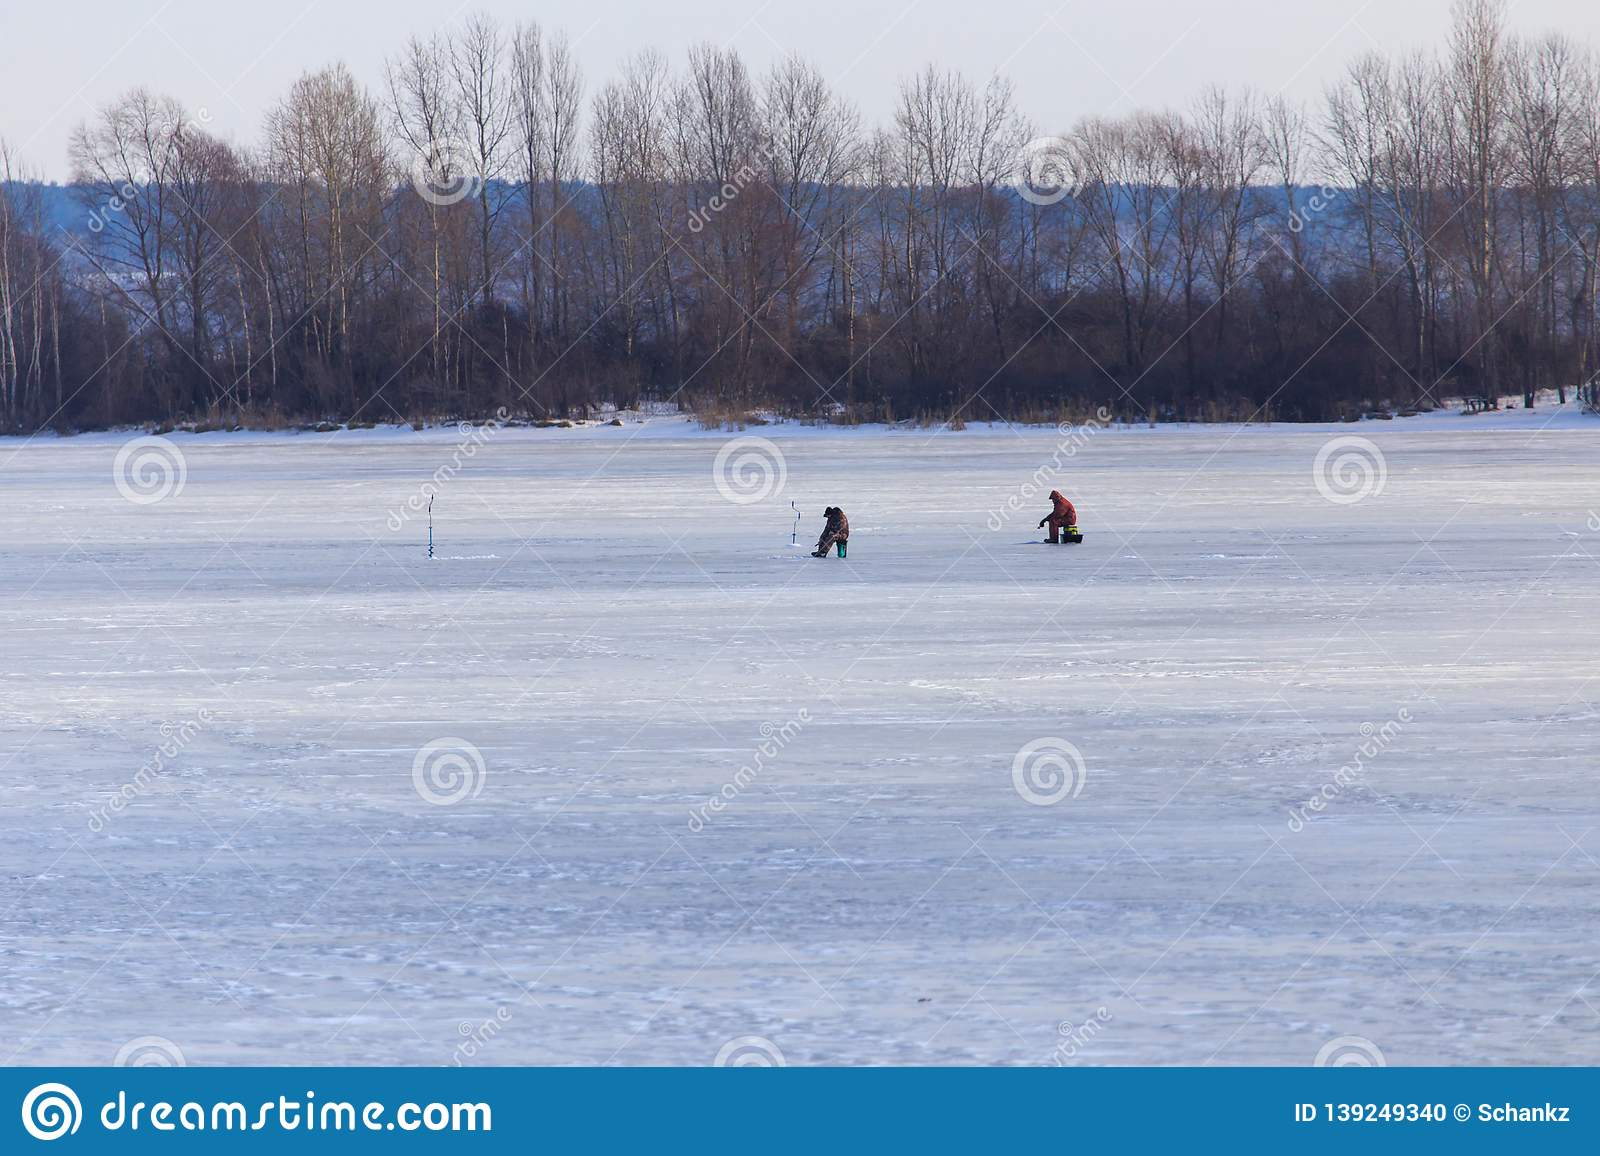 Fisherman catches fish on ice in winter